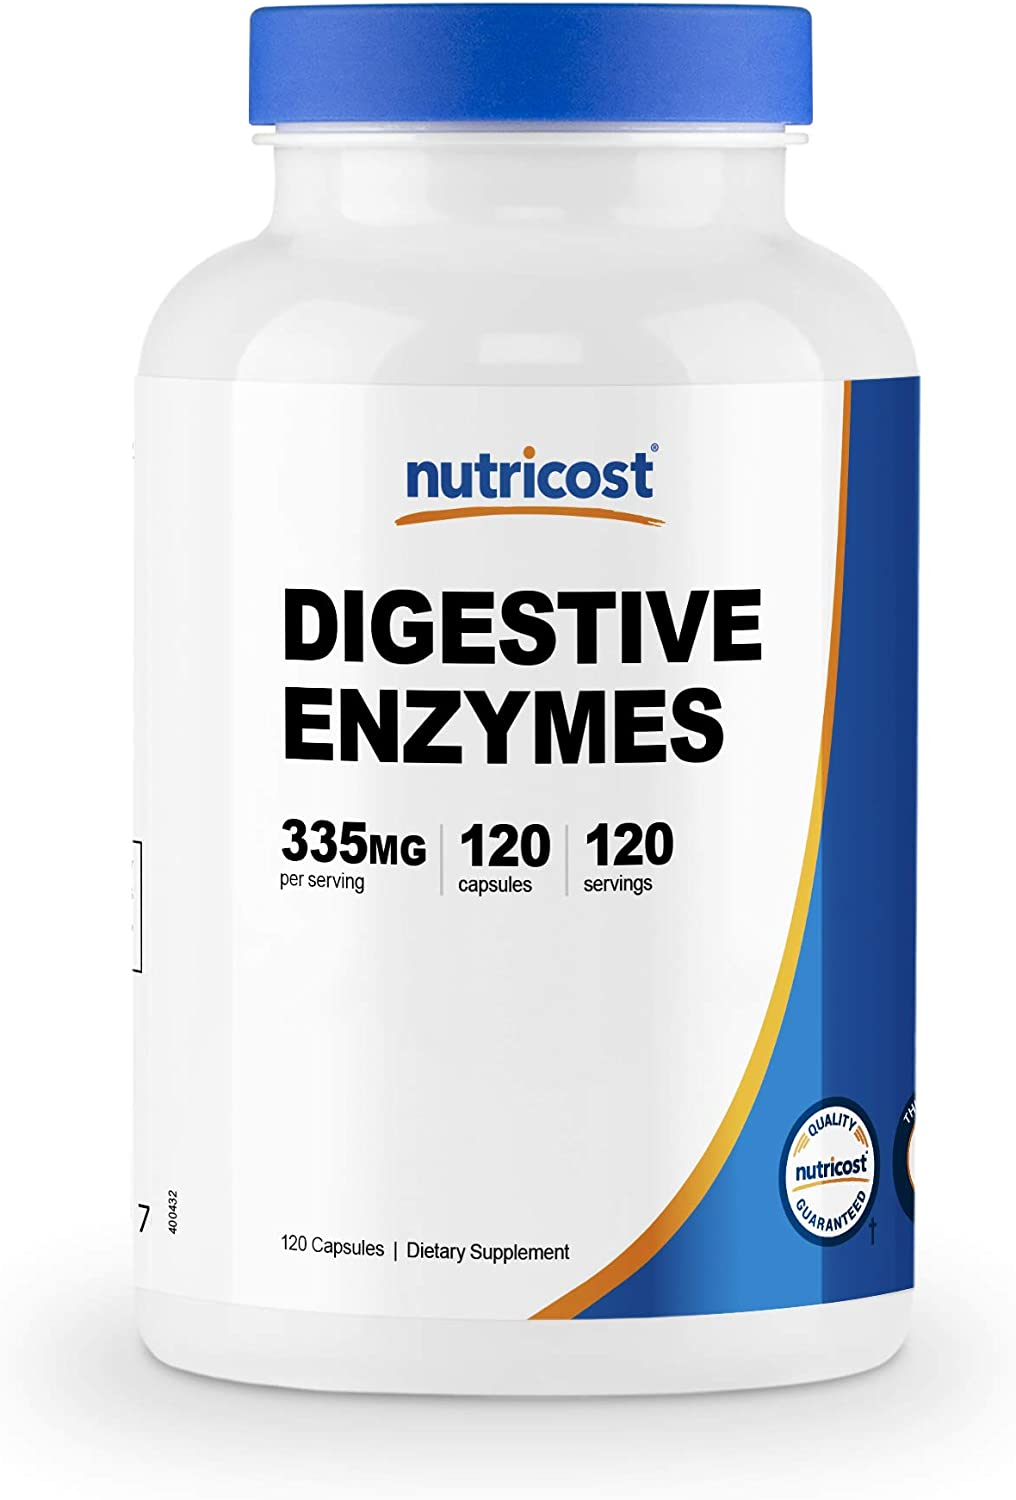 Nutricost Digestive Enzymes 335mg, 120 Veggie Capsules - Complete Digestive Enzyme Supplement